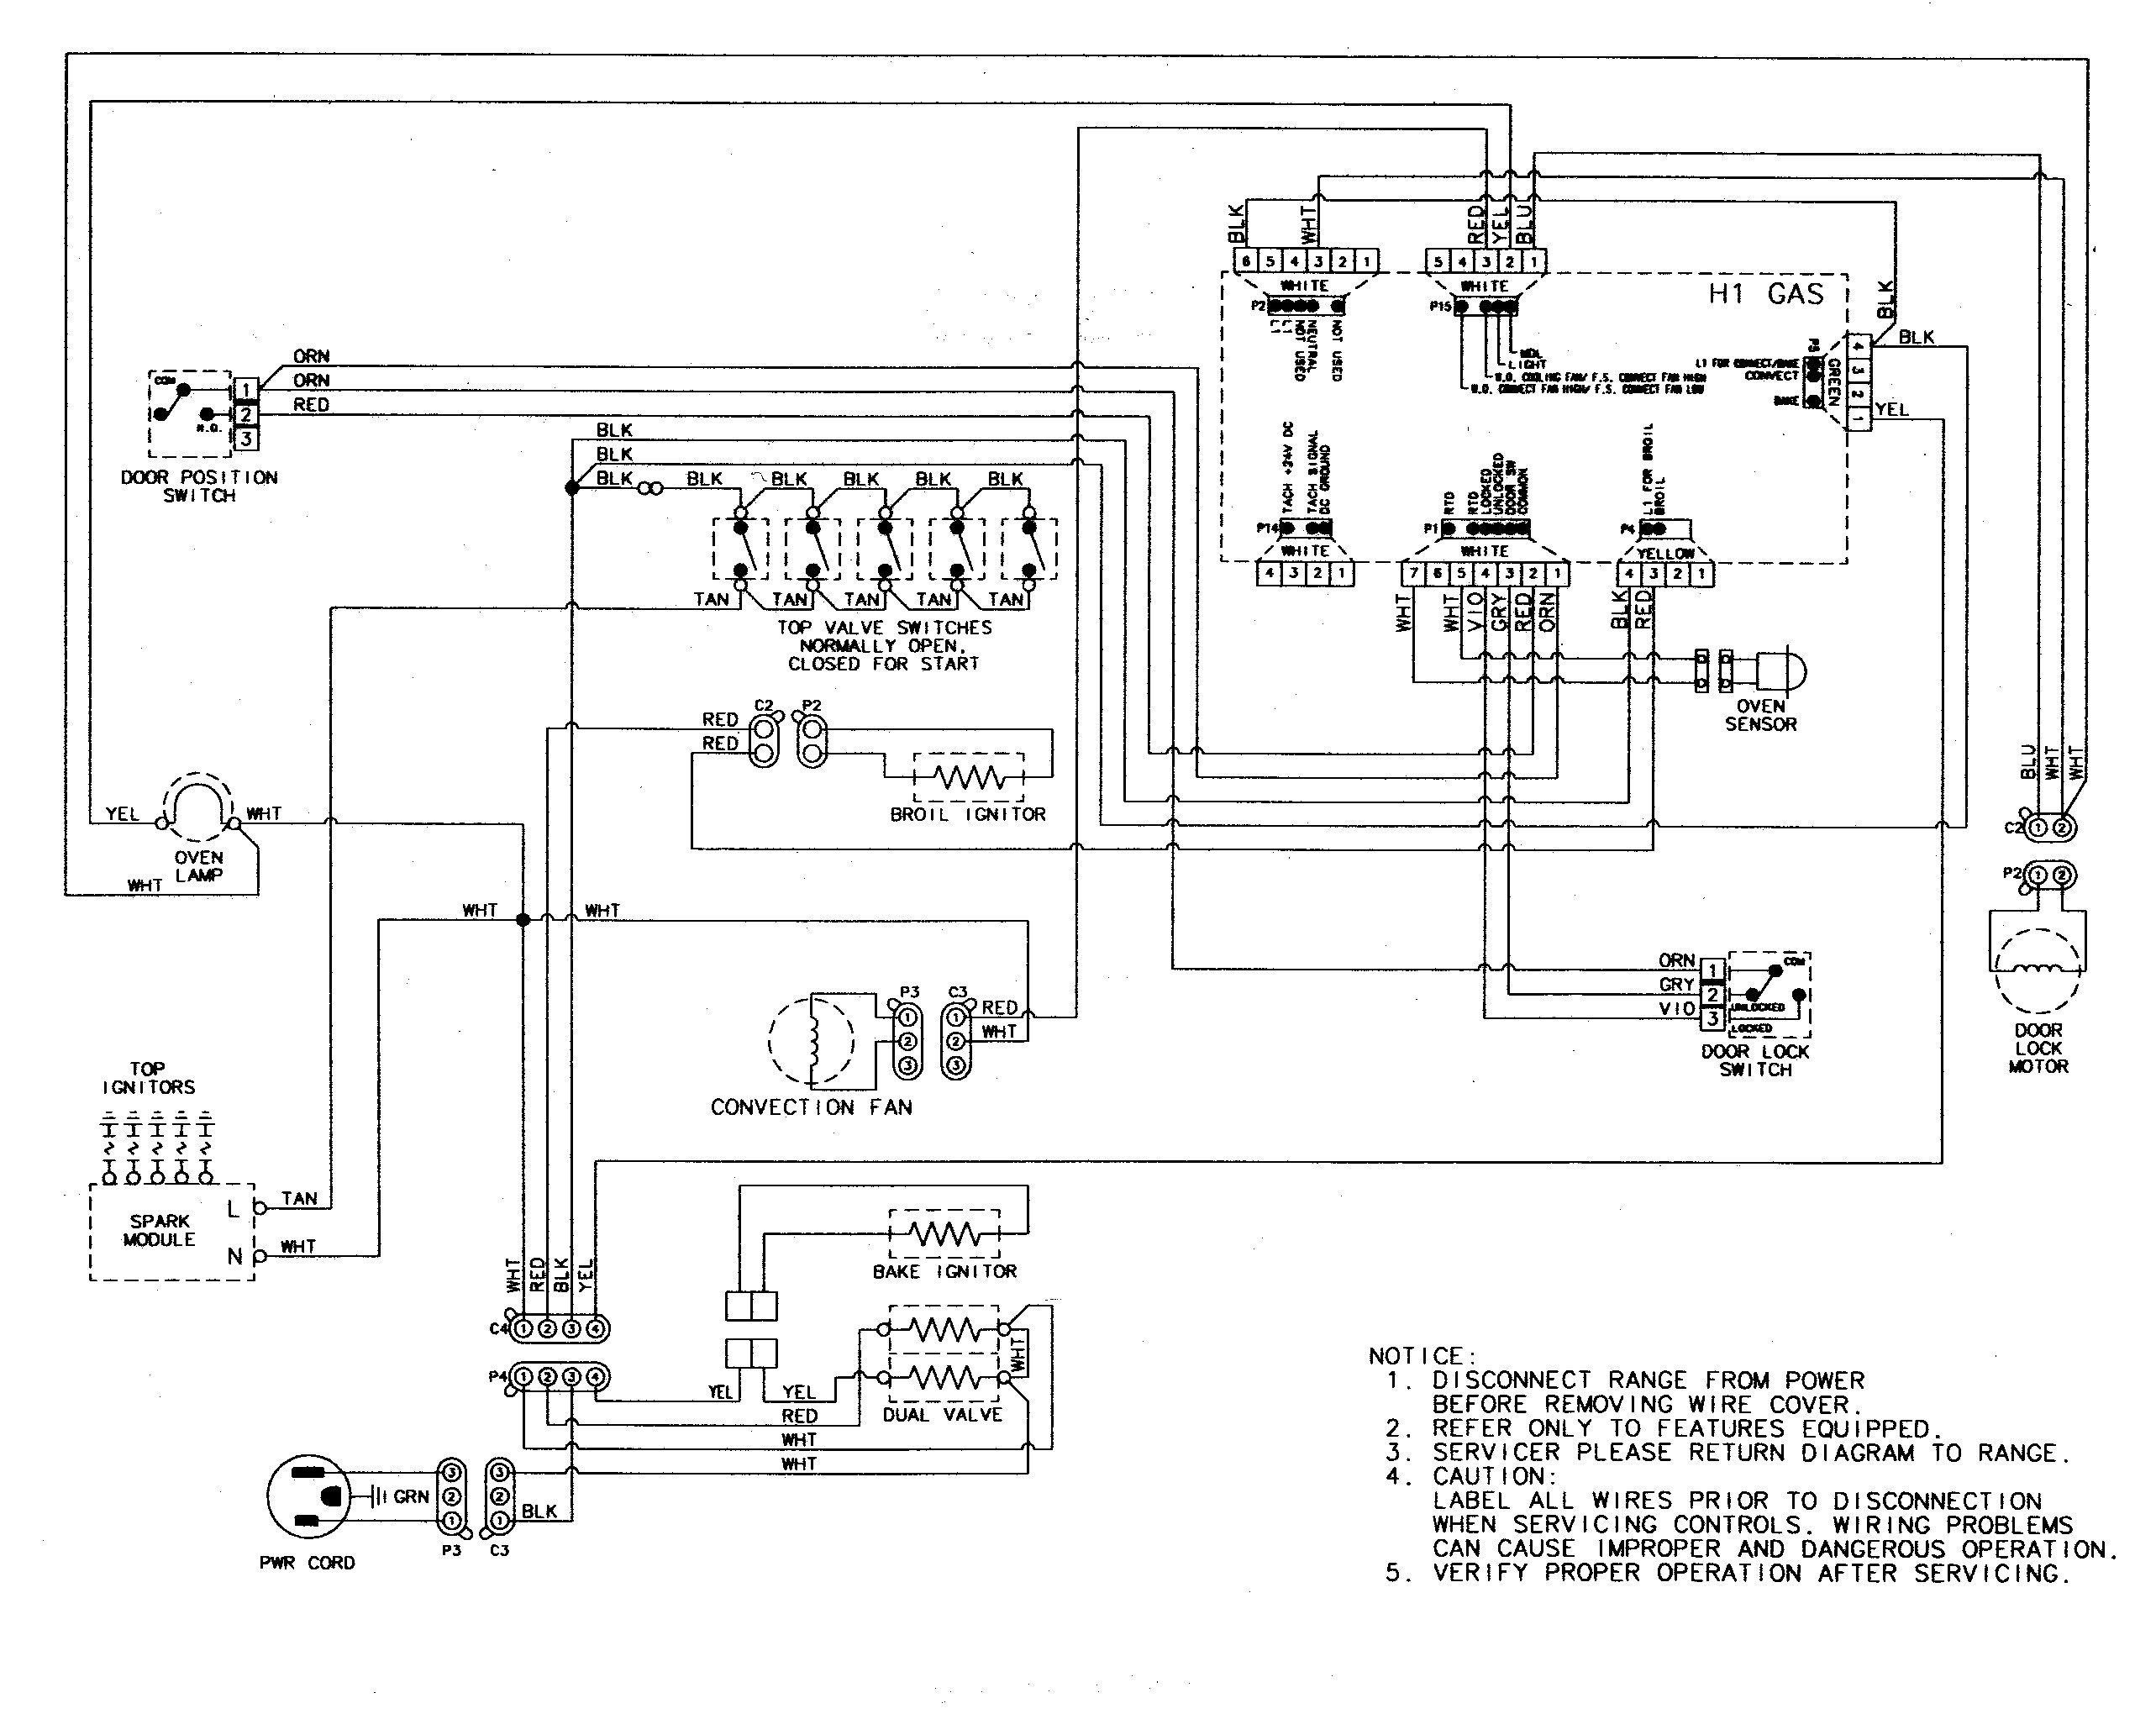 whirlpool gas dryer wiring diagram Collection Wiring Diagram For Maytag Atlantis Dryer New Beautiful Diagrams DOWNLOAD Wiring Diagram